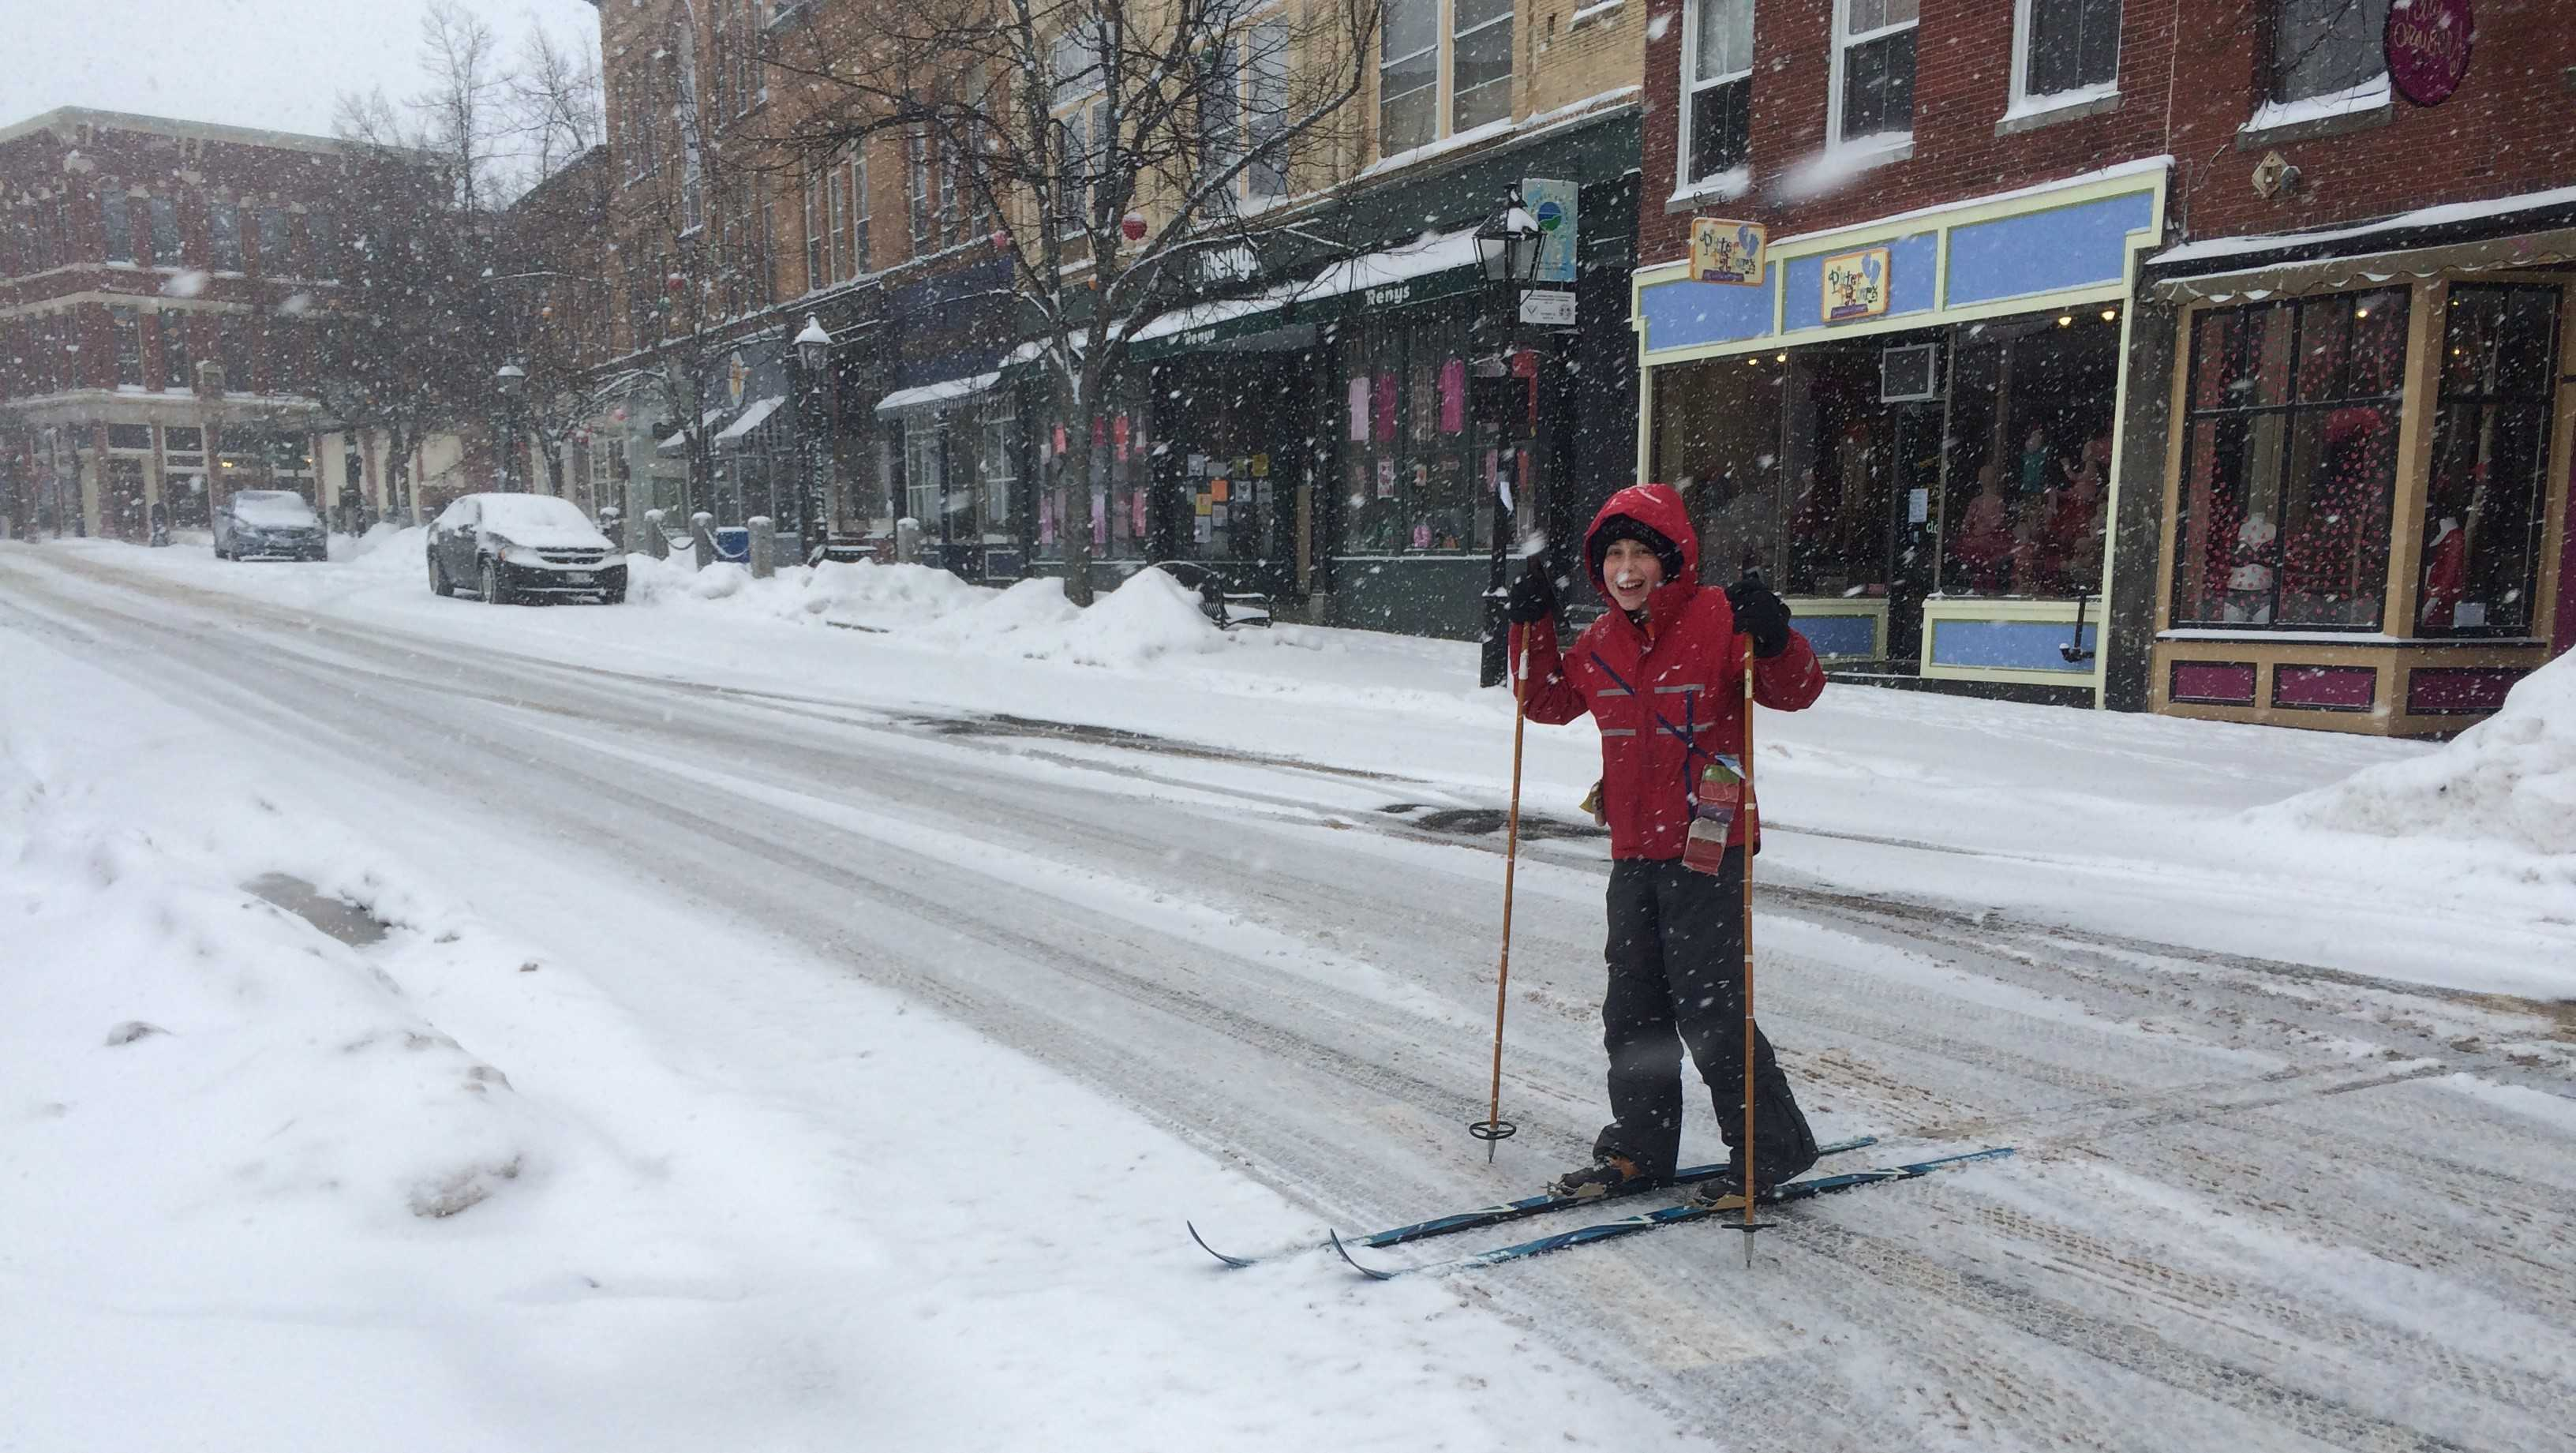 Isaac Ensel from Bath cross county skiing on Main Street.